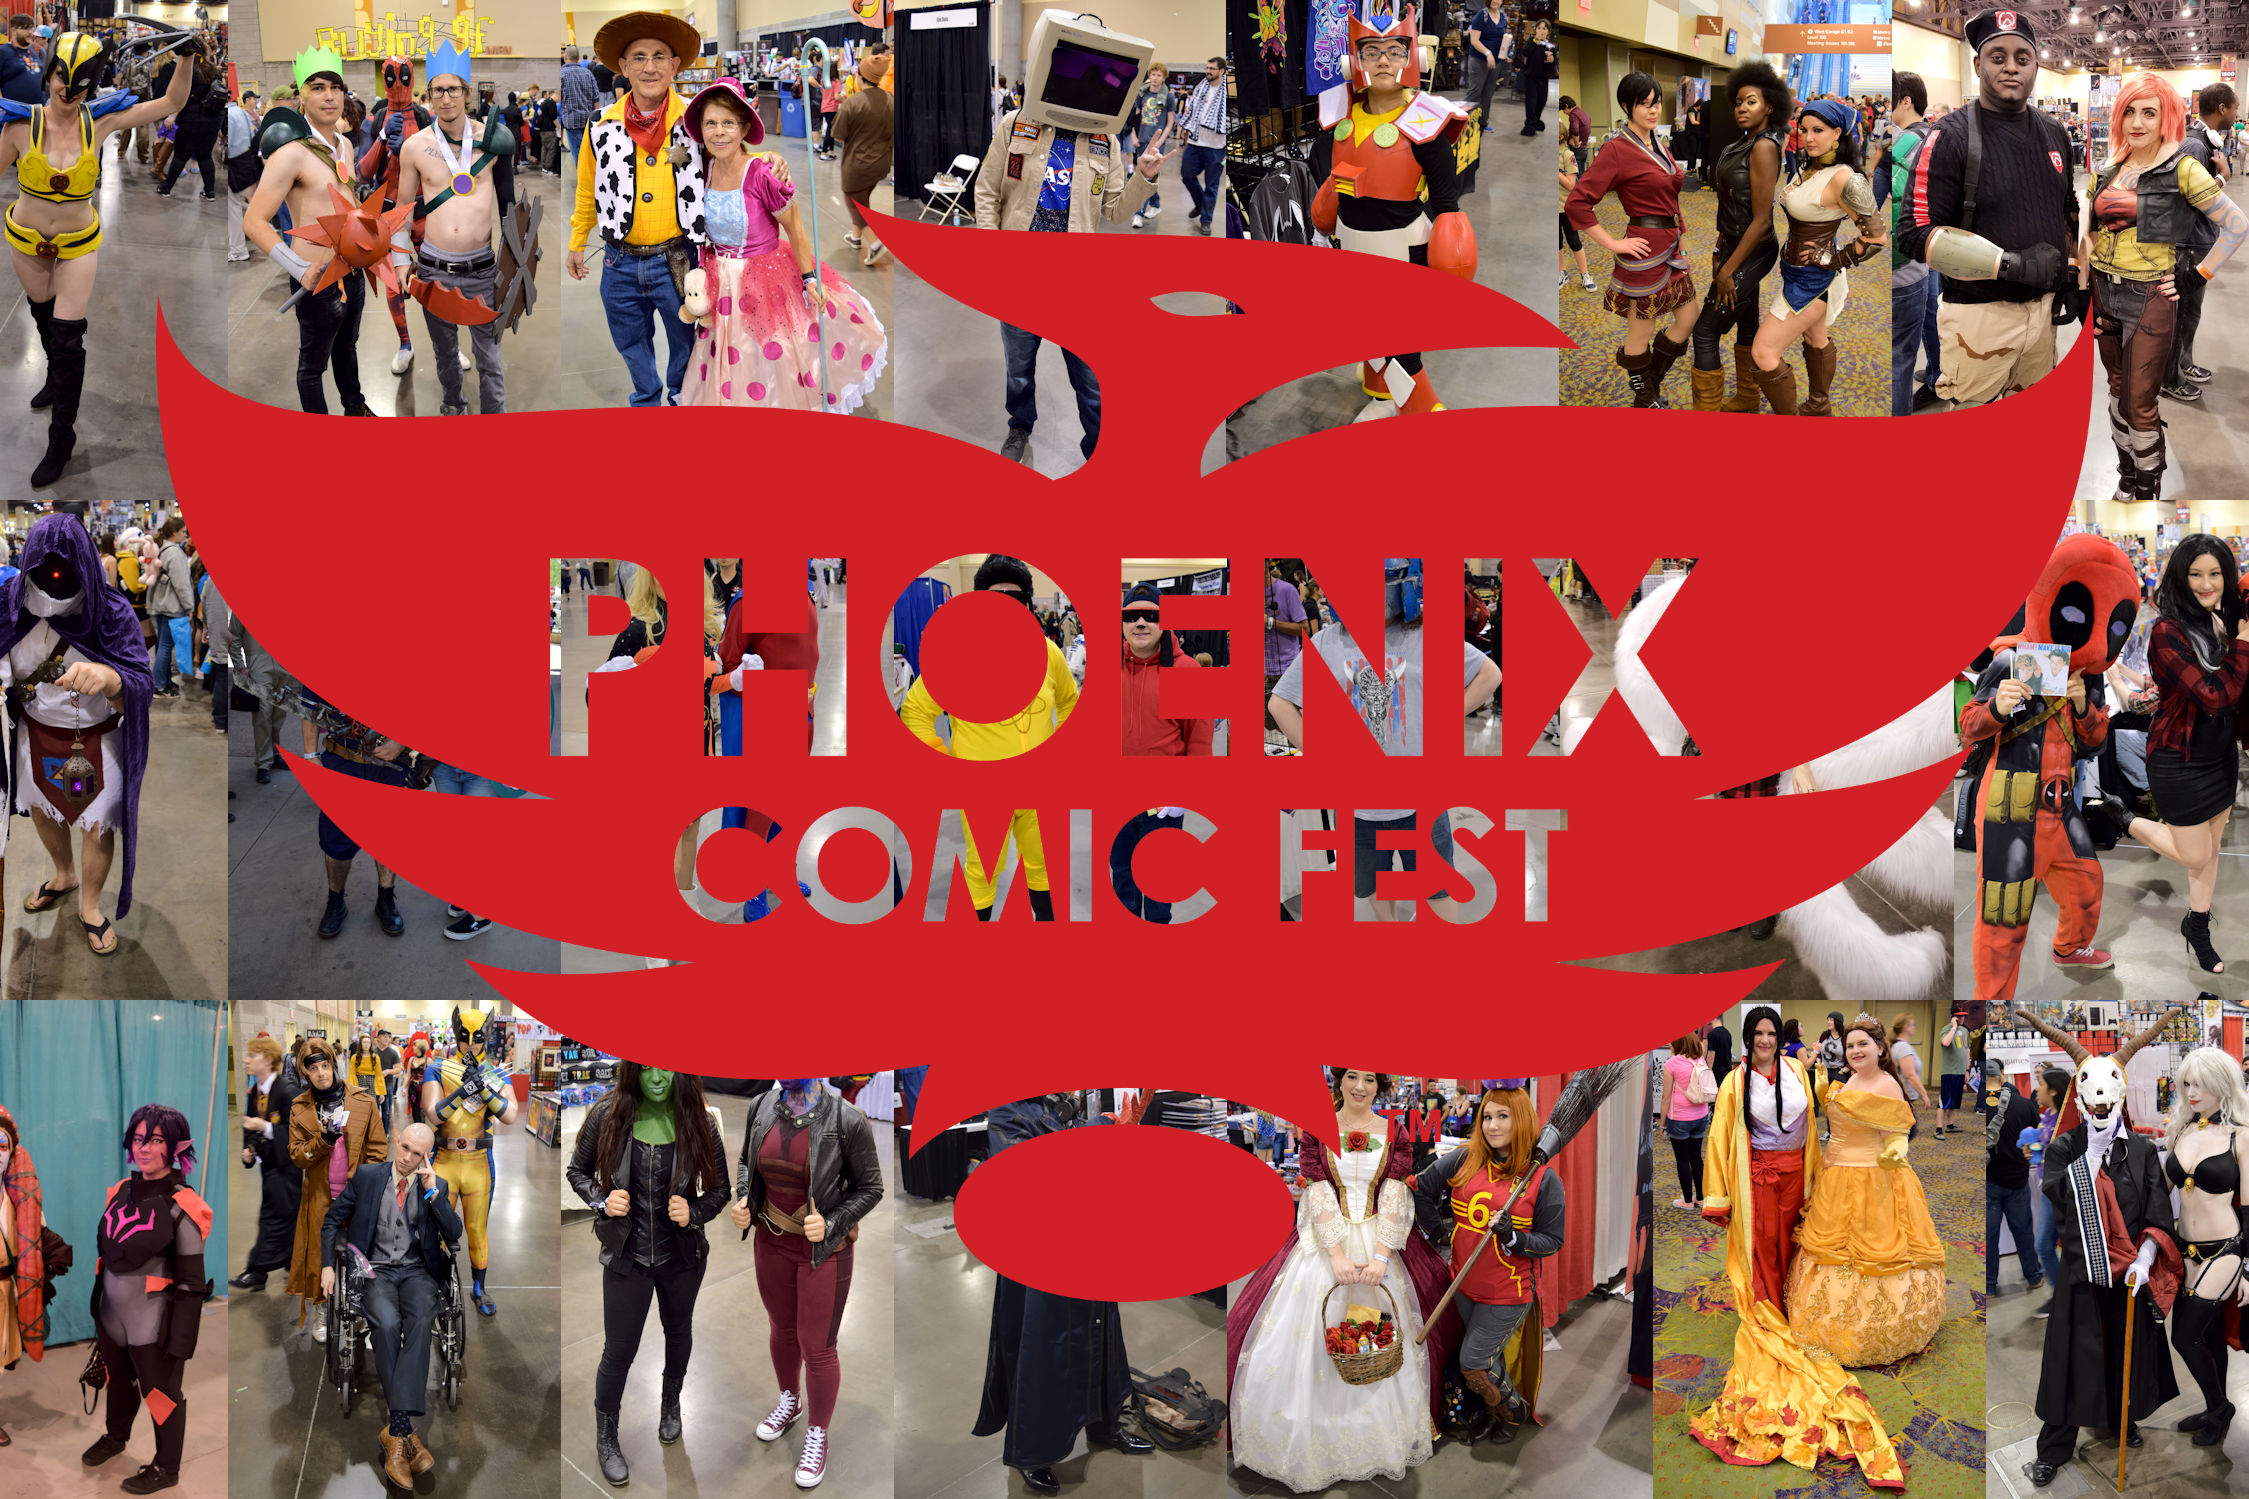 Cosplay at Phoenix Comic Fest 2018 - Over 150 Photos   Written by Neil Greenaway